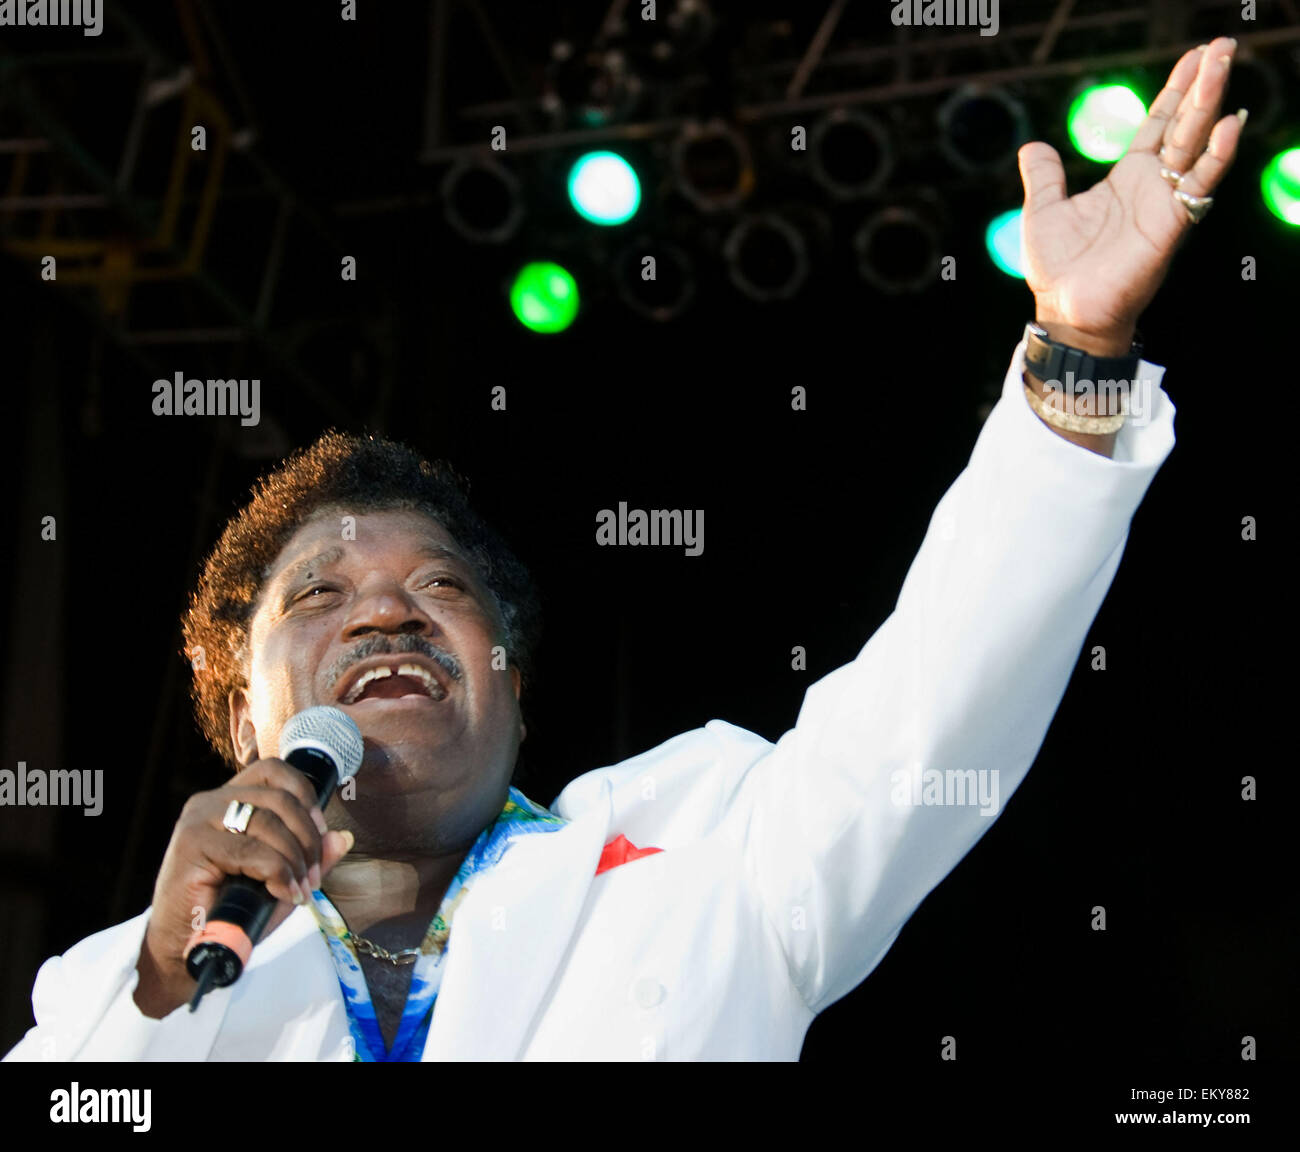 PERCY SLEDGE (November 25, 1940 - April 14, 2015) was an American R&B and soul singer best known for his 1966 - Stock Image